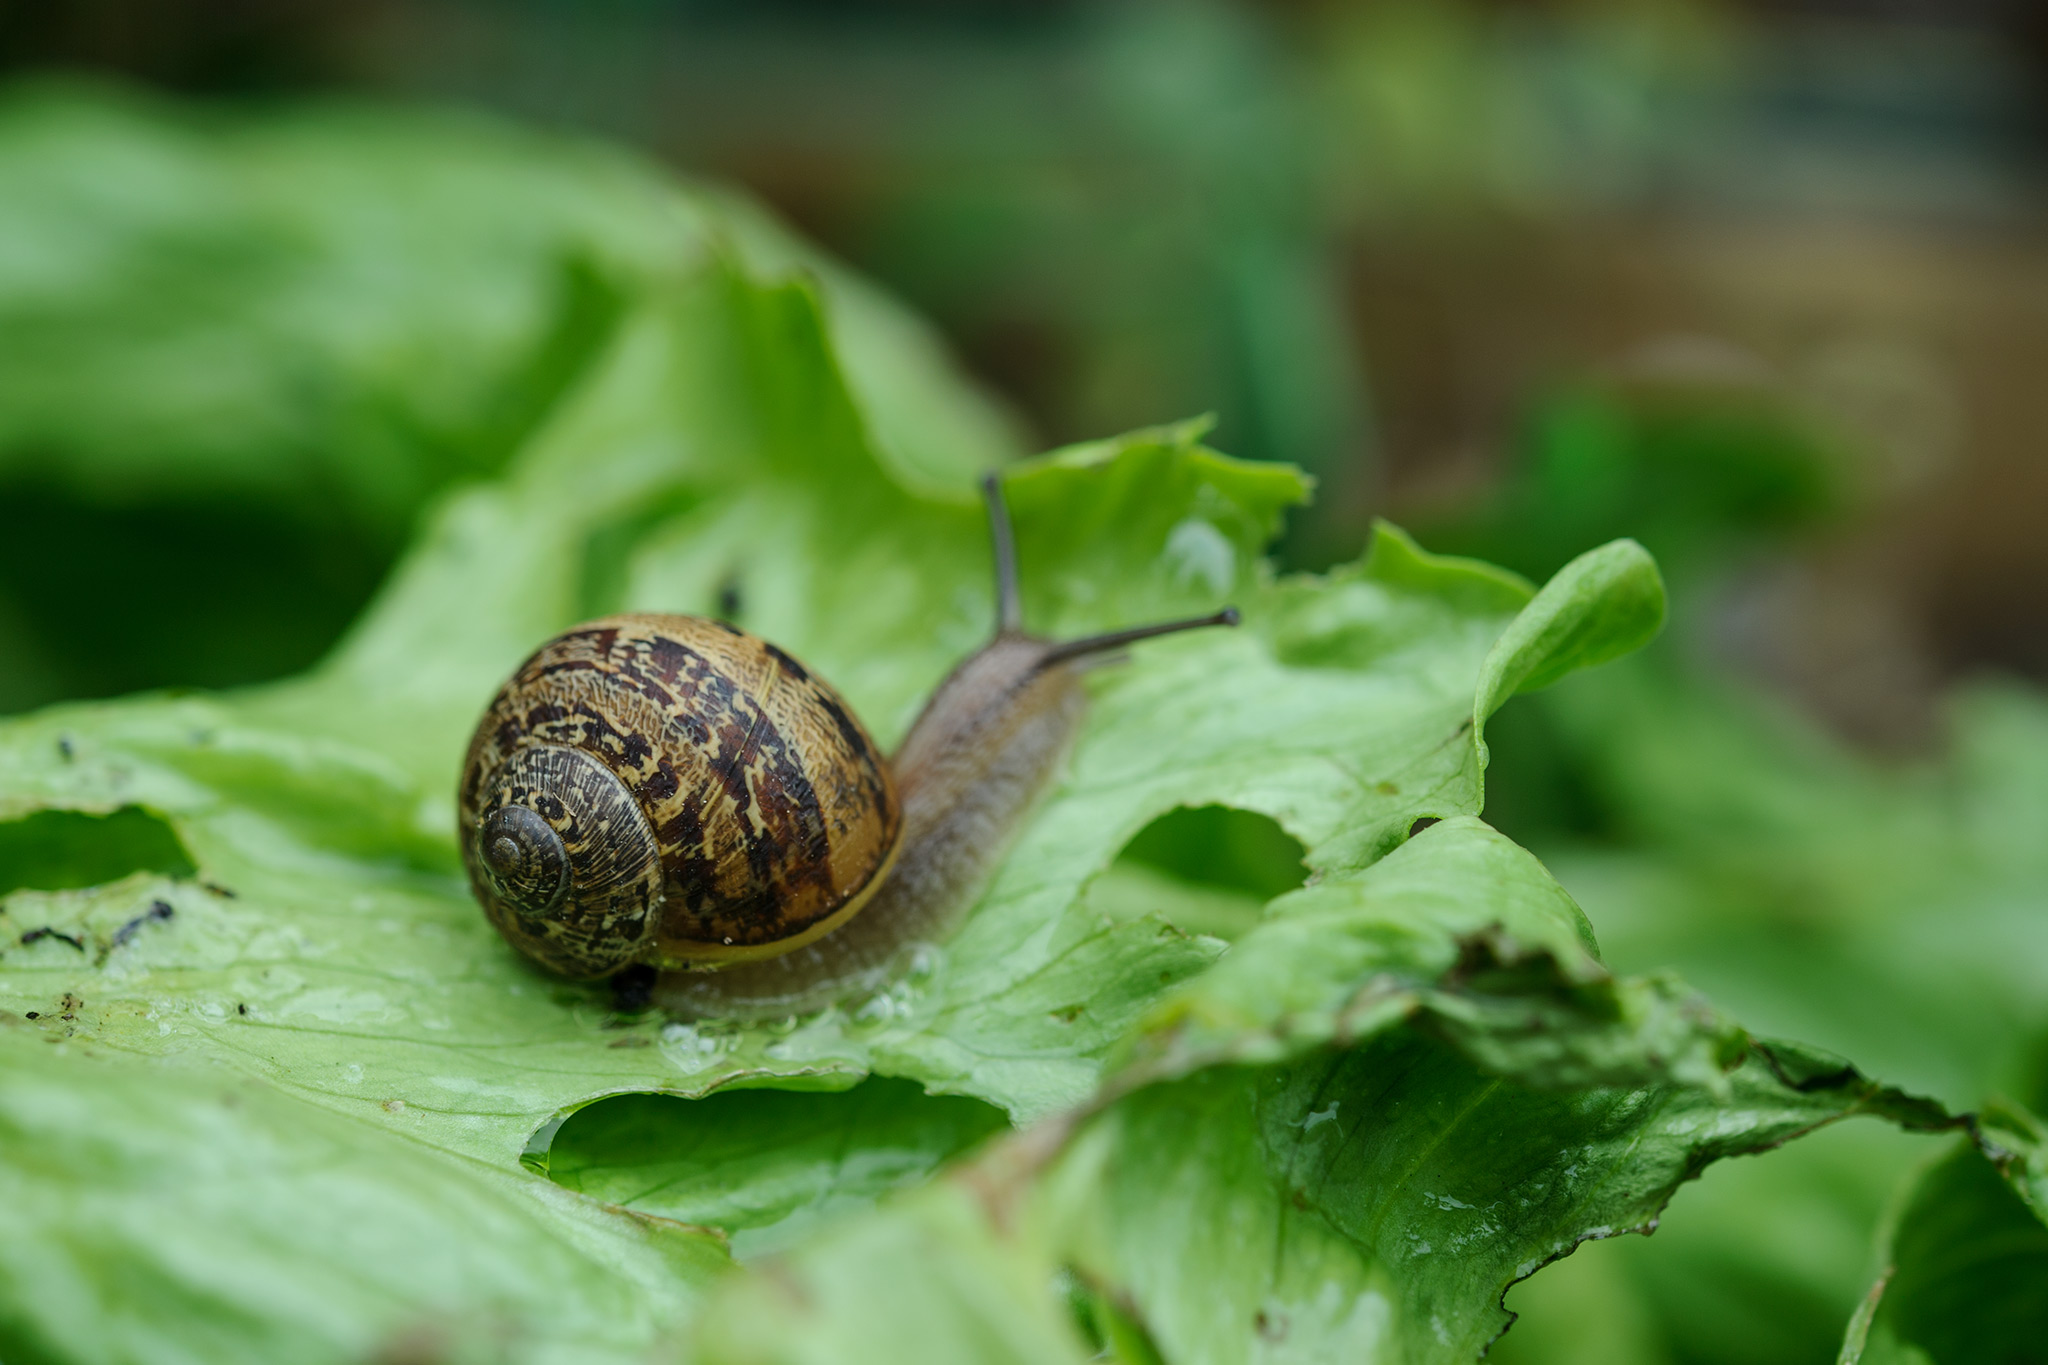 snail-on-salad-leaves-2